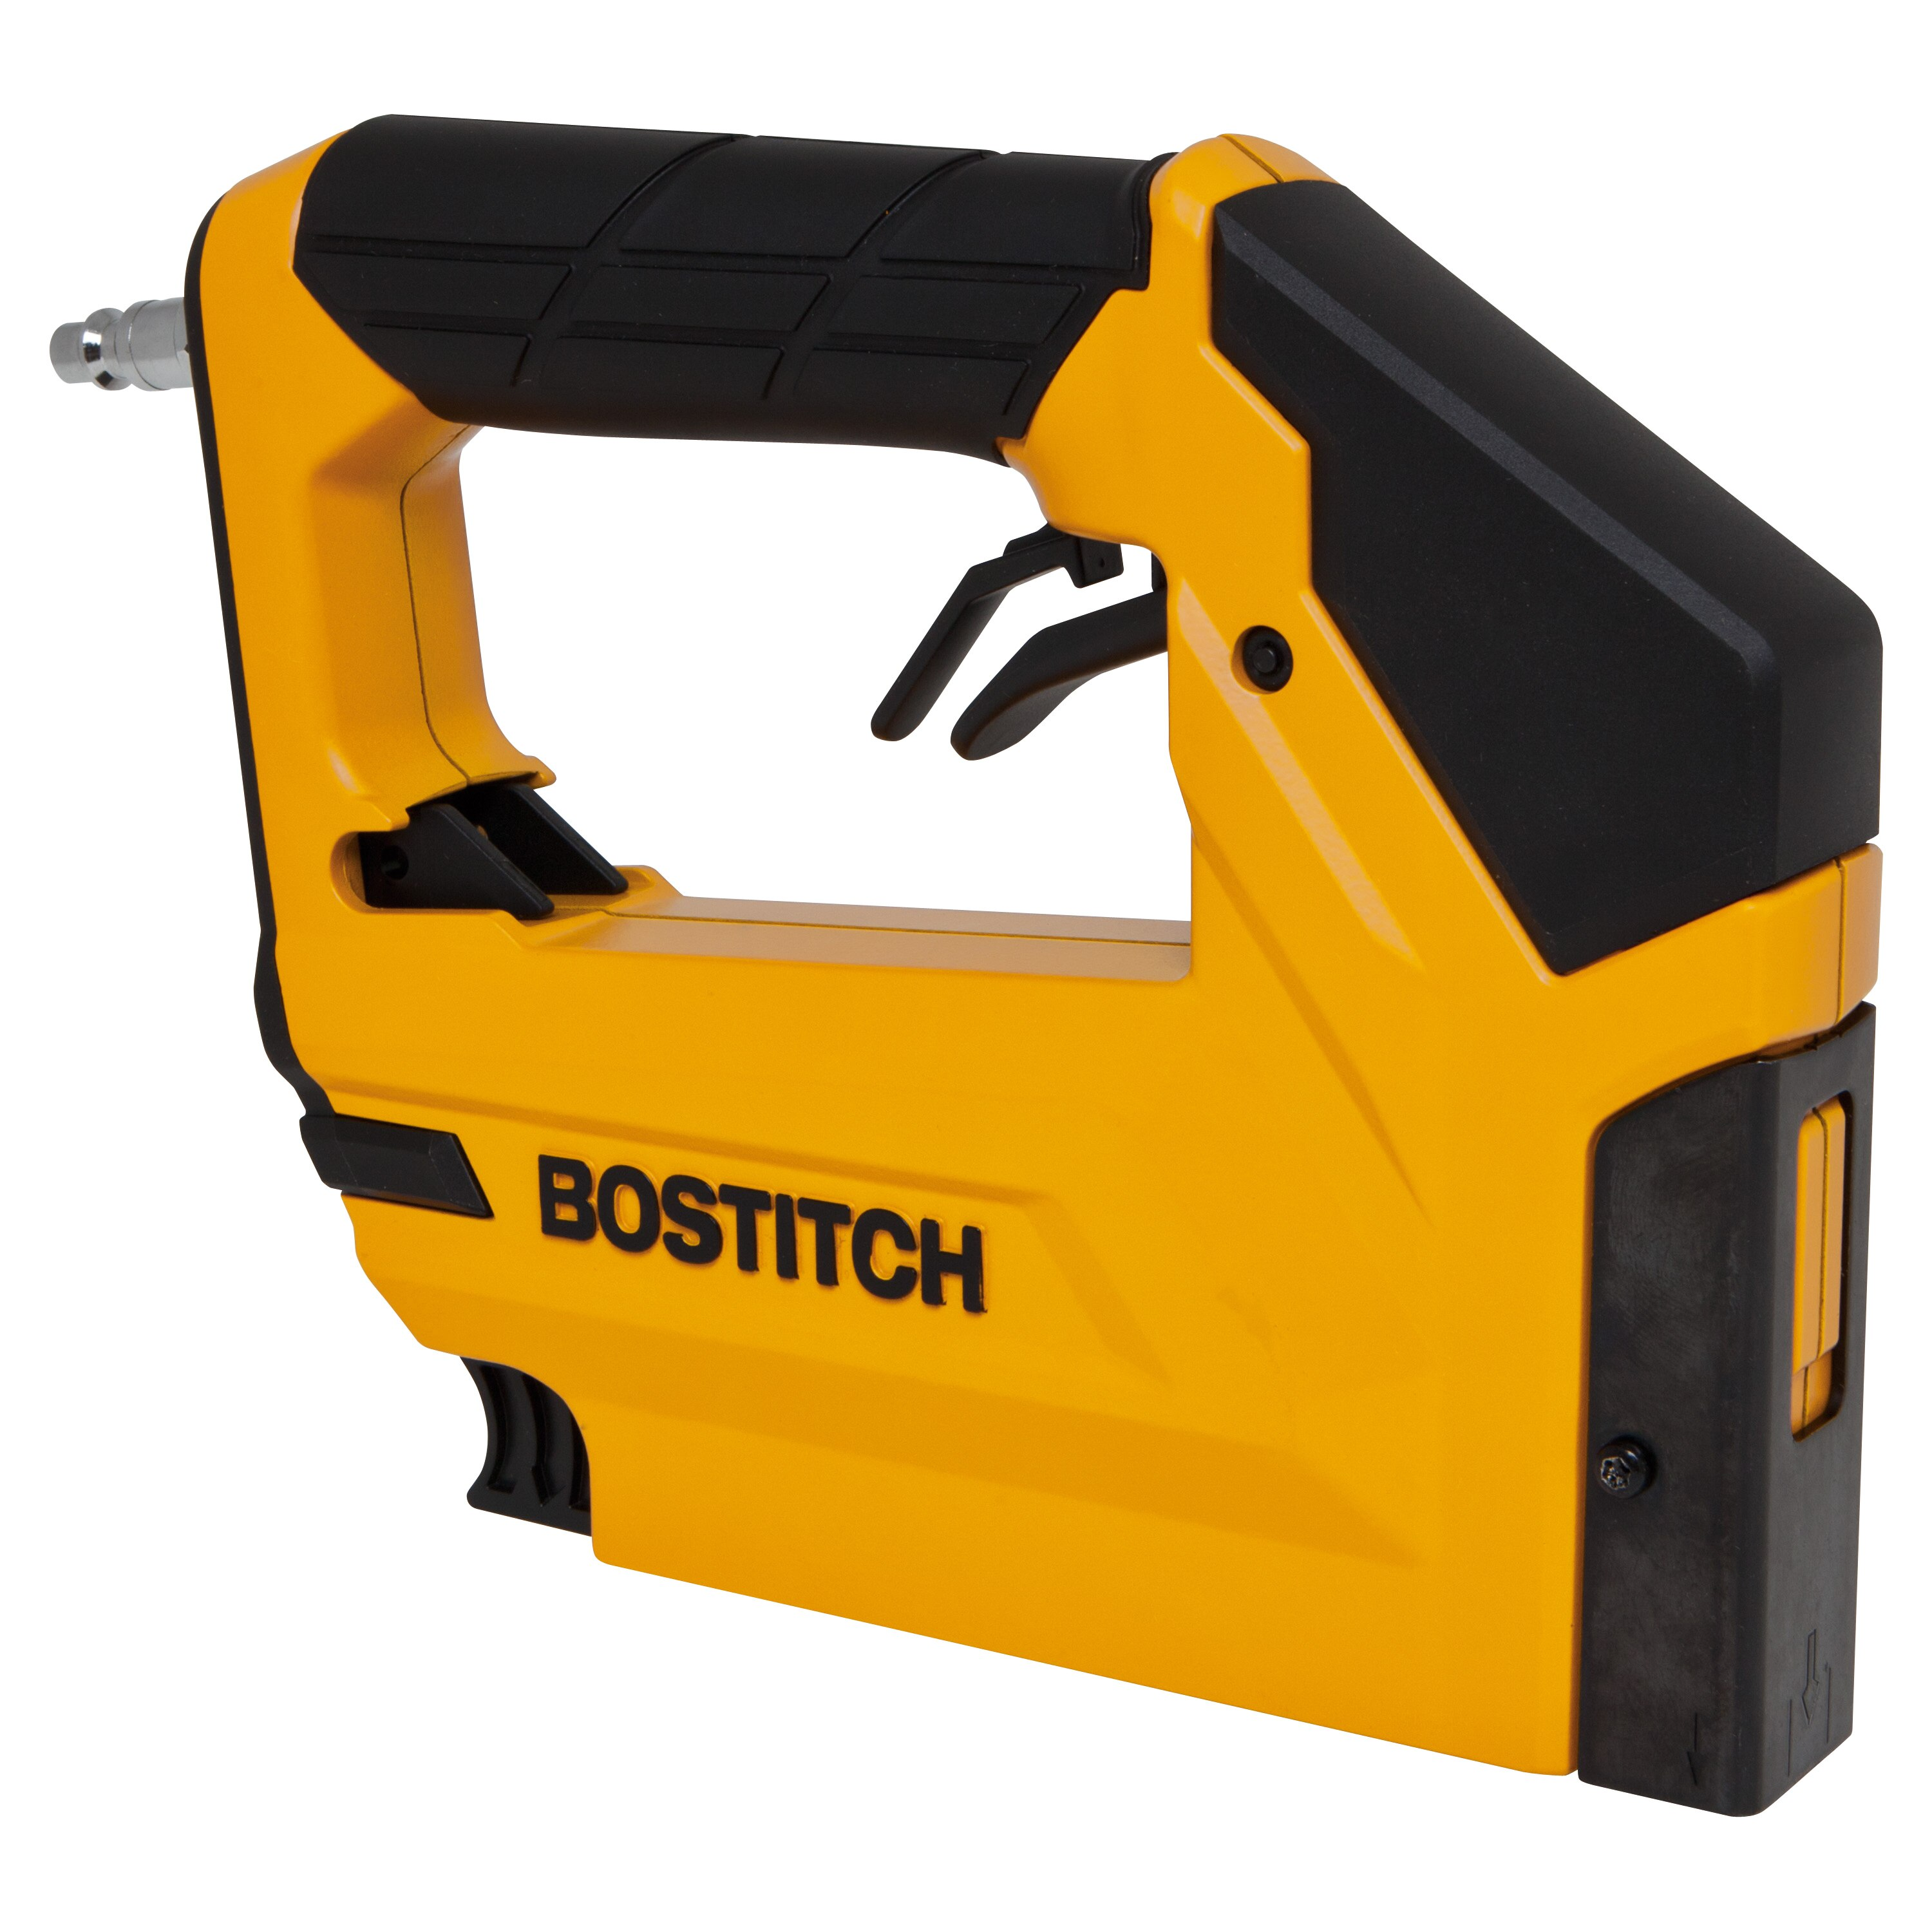 Bostitch - Heavy Duty 38 Crown Stapler - BTFP71875